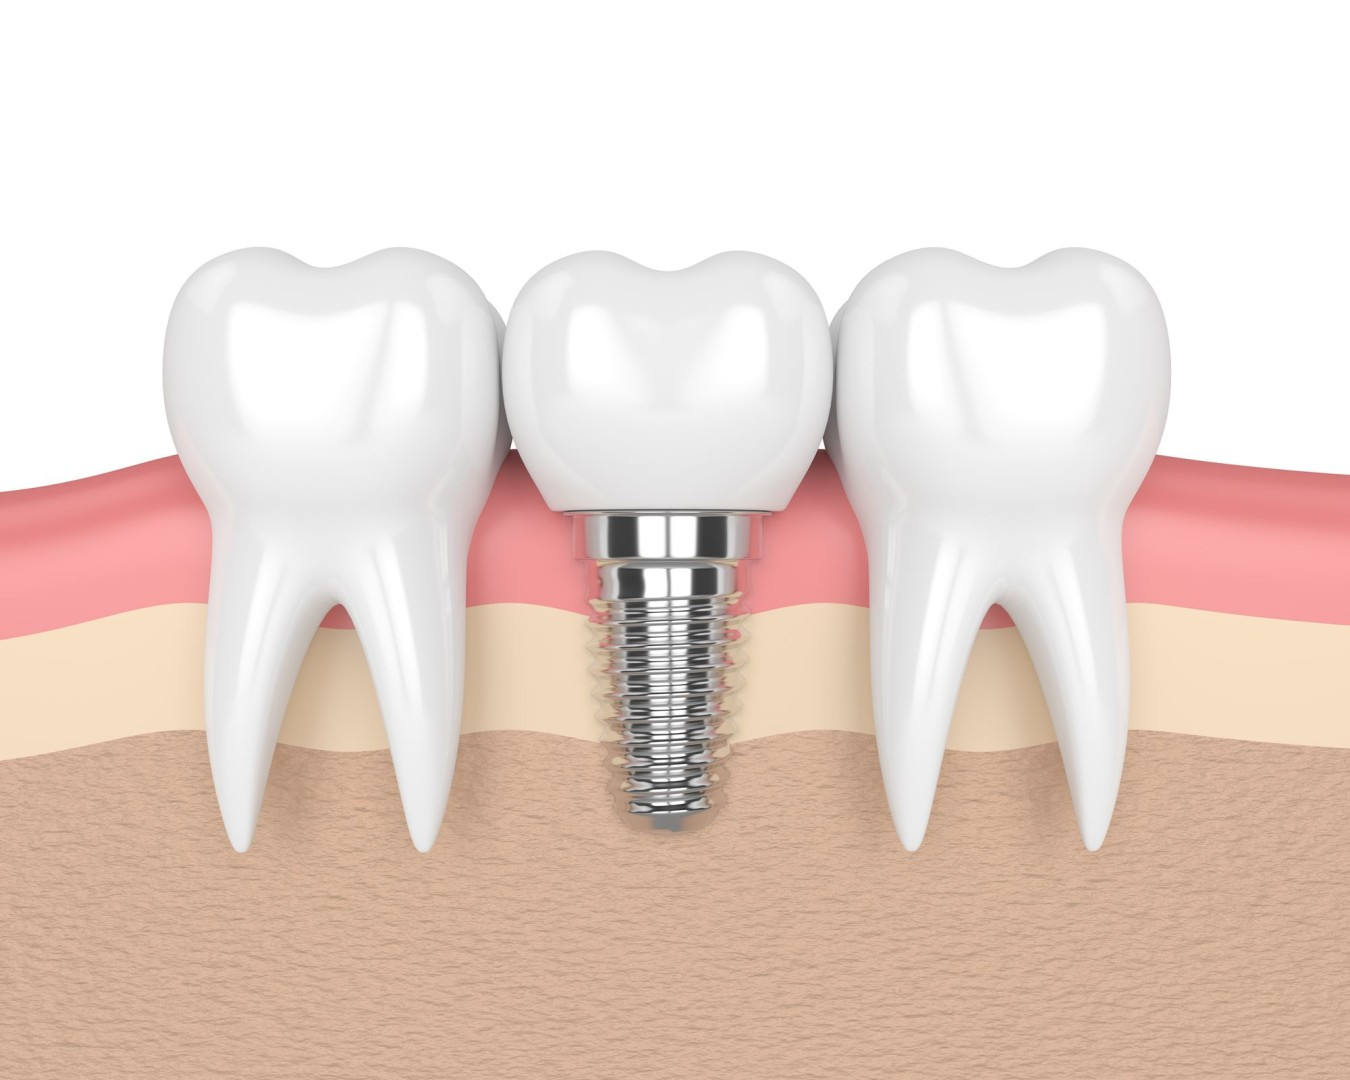 Implant dentaire : y a-t-il des contres-indications ?